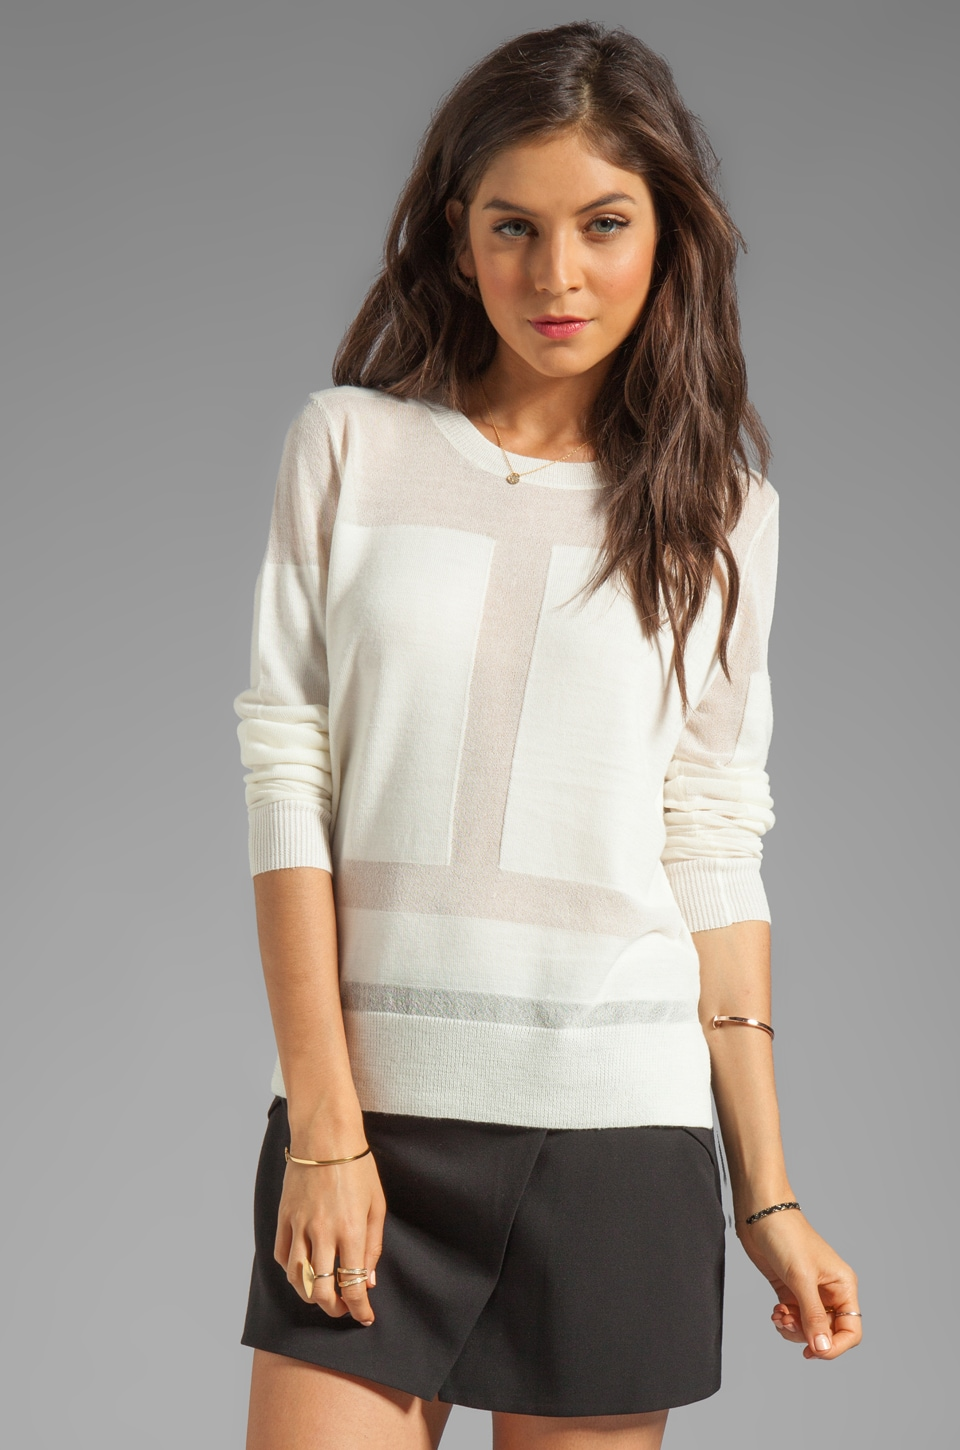 BCBGMAXAZRIA Sheer Combo Long Sleeve Top in Gardenia